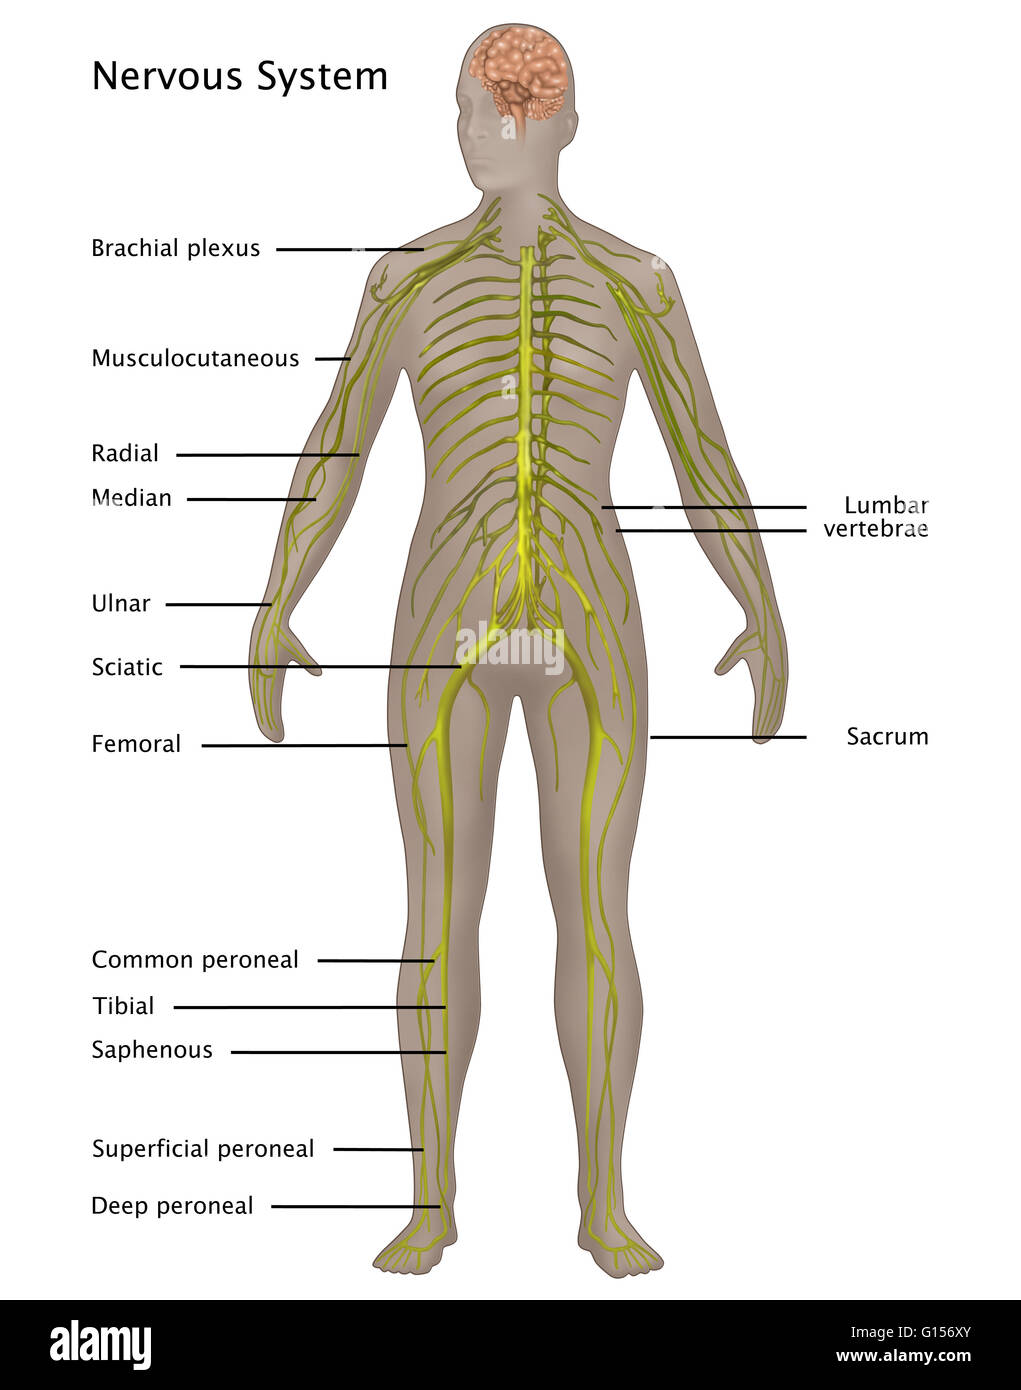 Illustration Of The Nervous System In The Female Anatomy Labeled